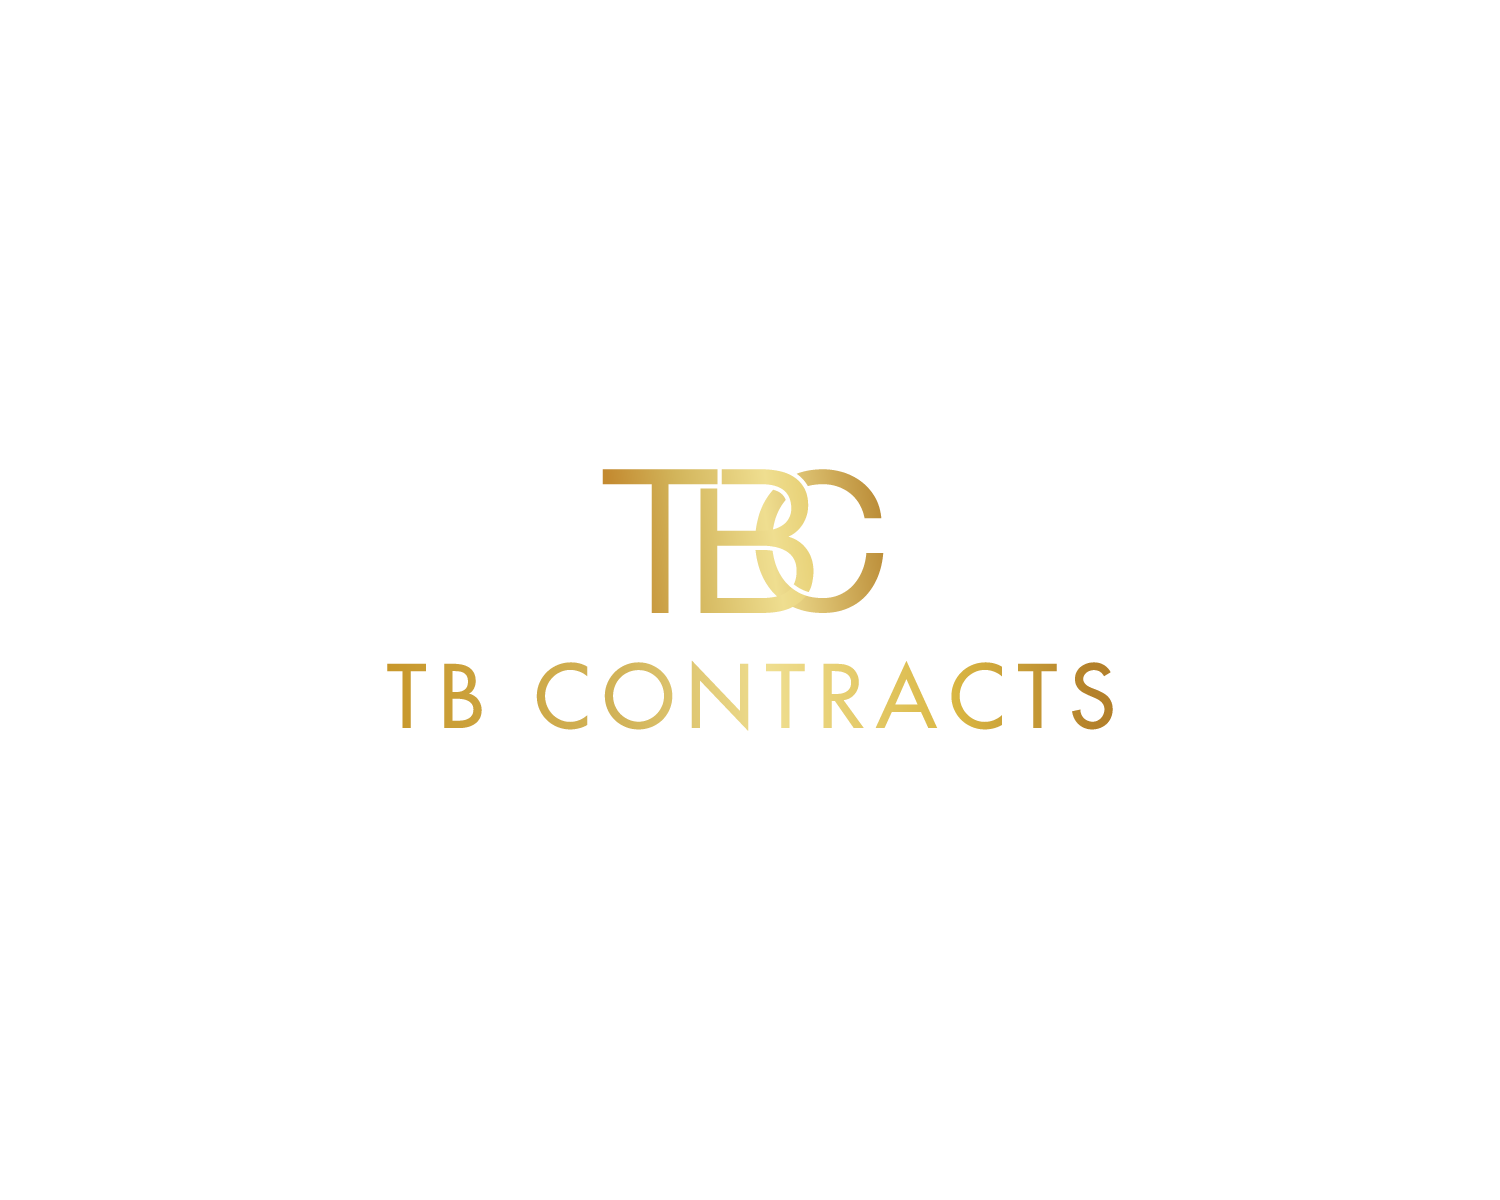 tbcontracts